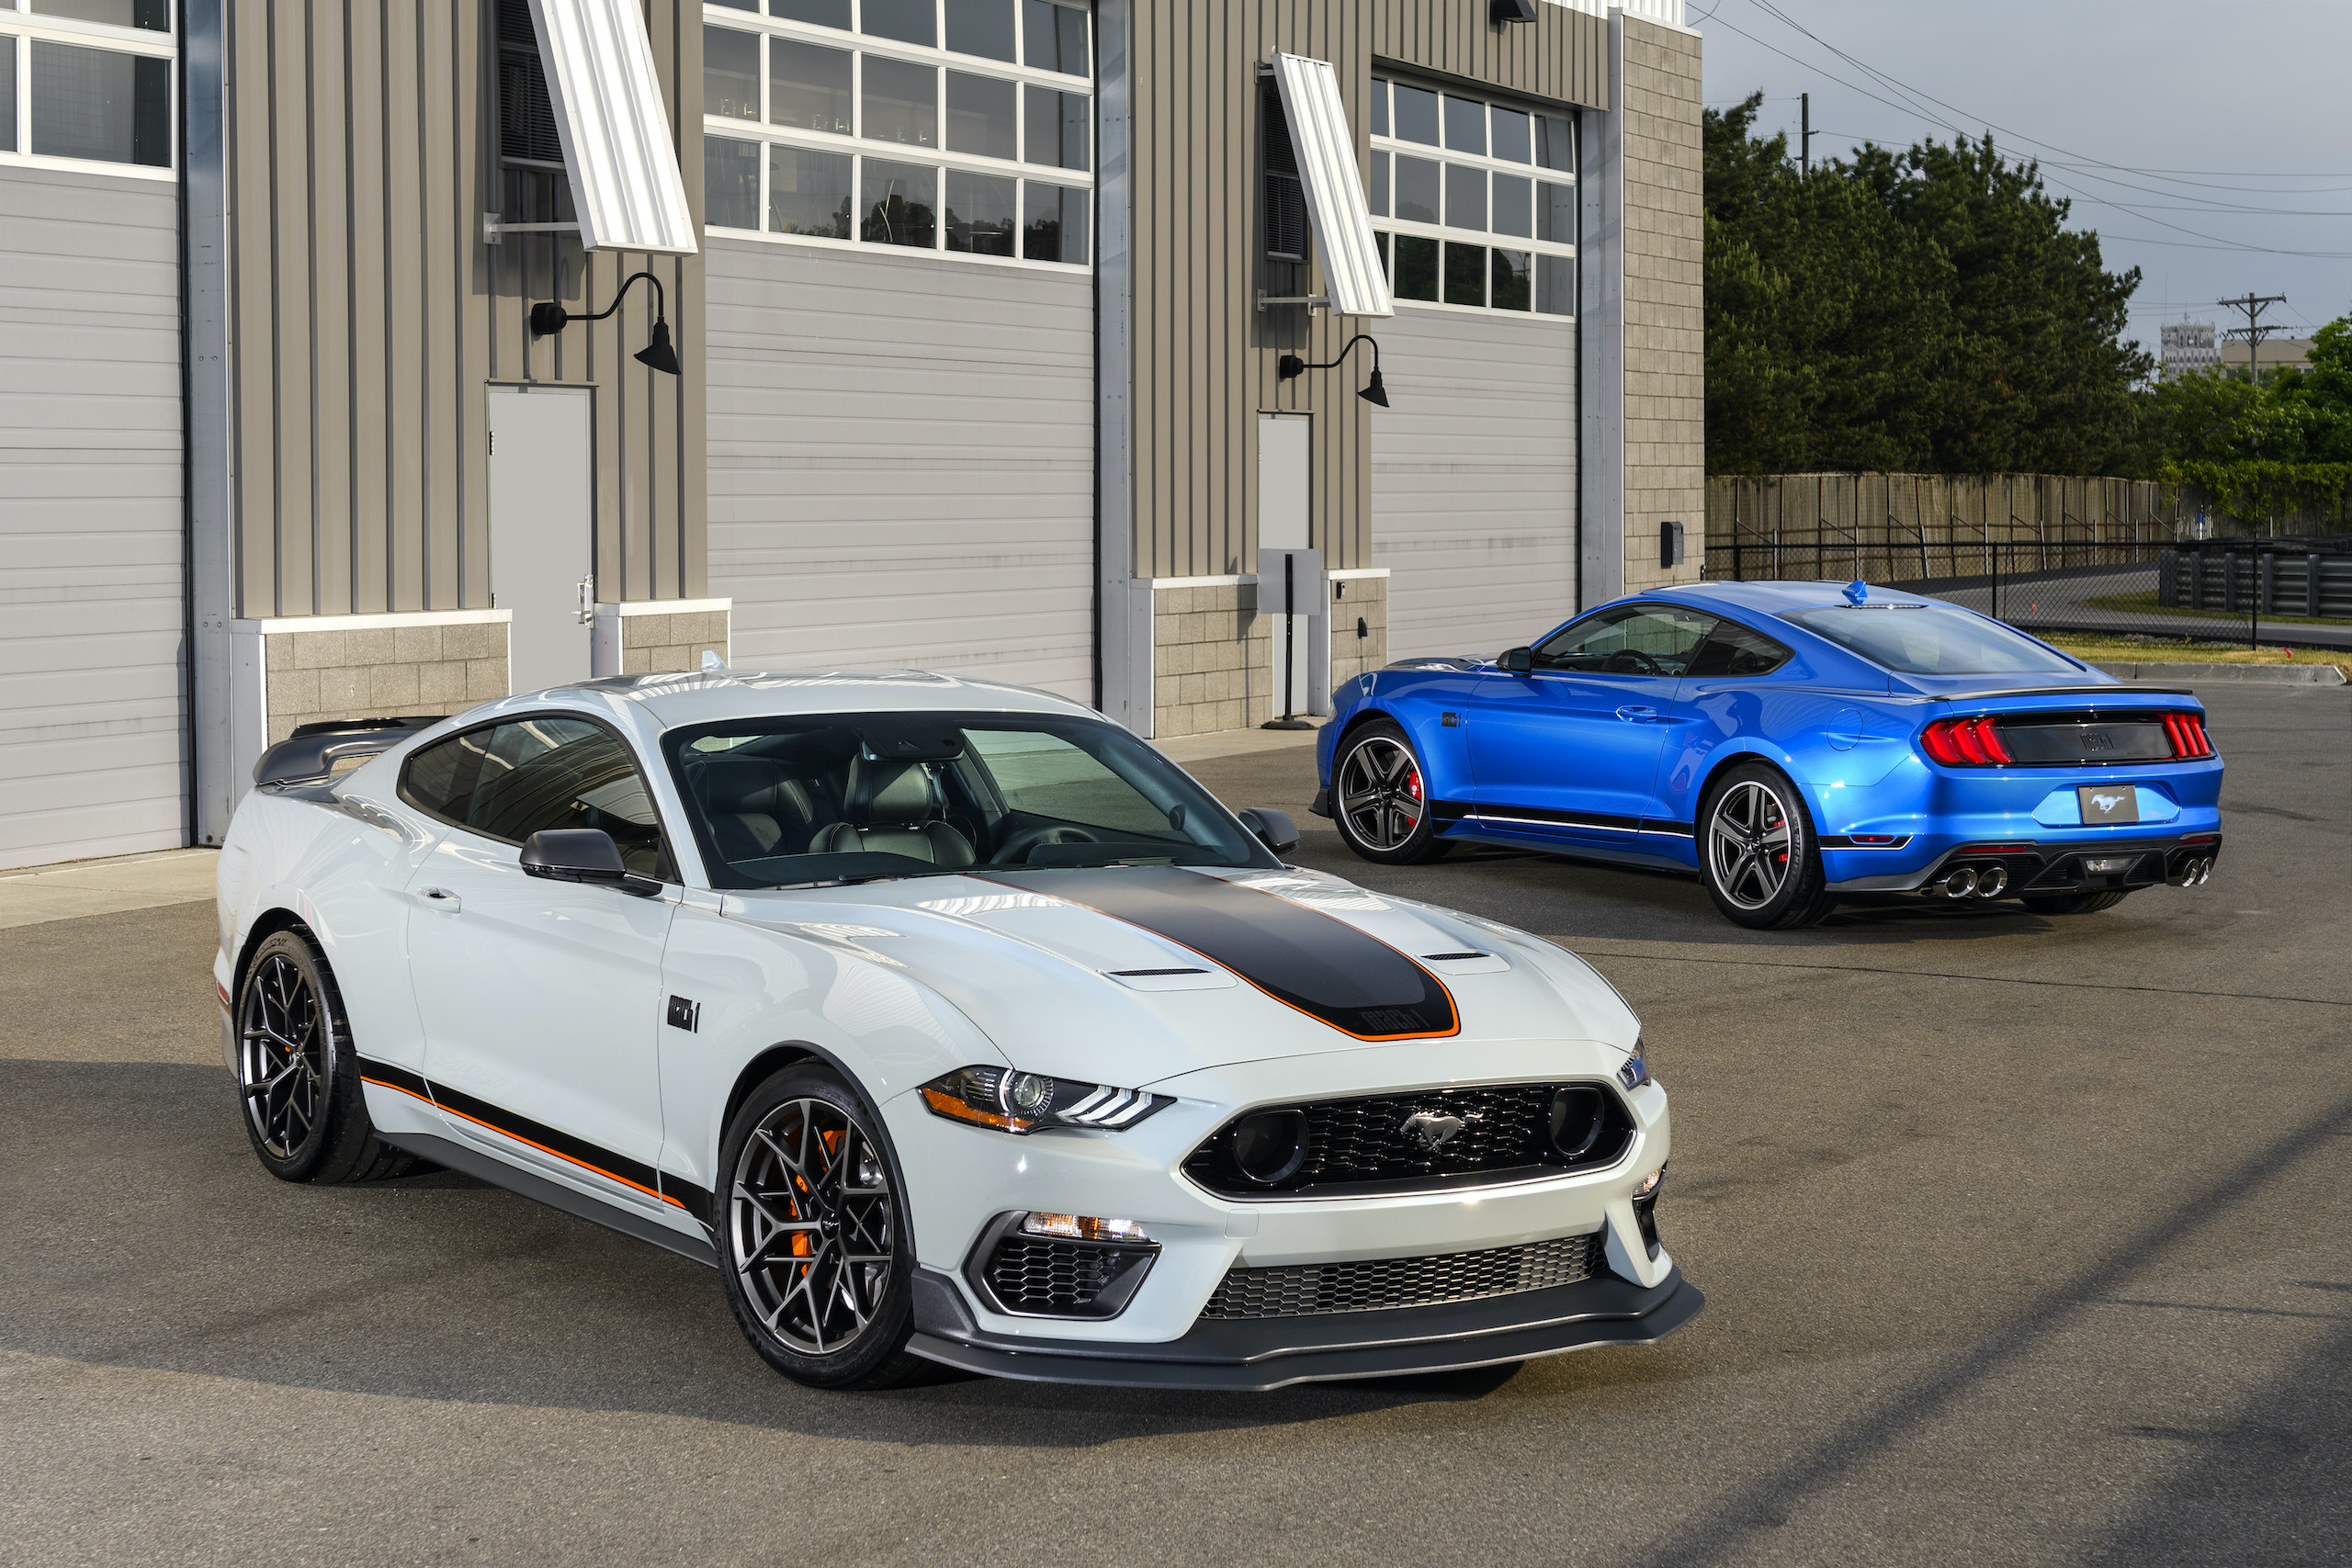 2021 Mustang Mach 1 white front three-quarter with blue